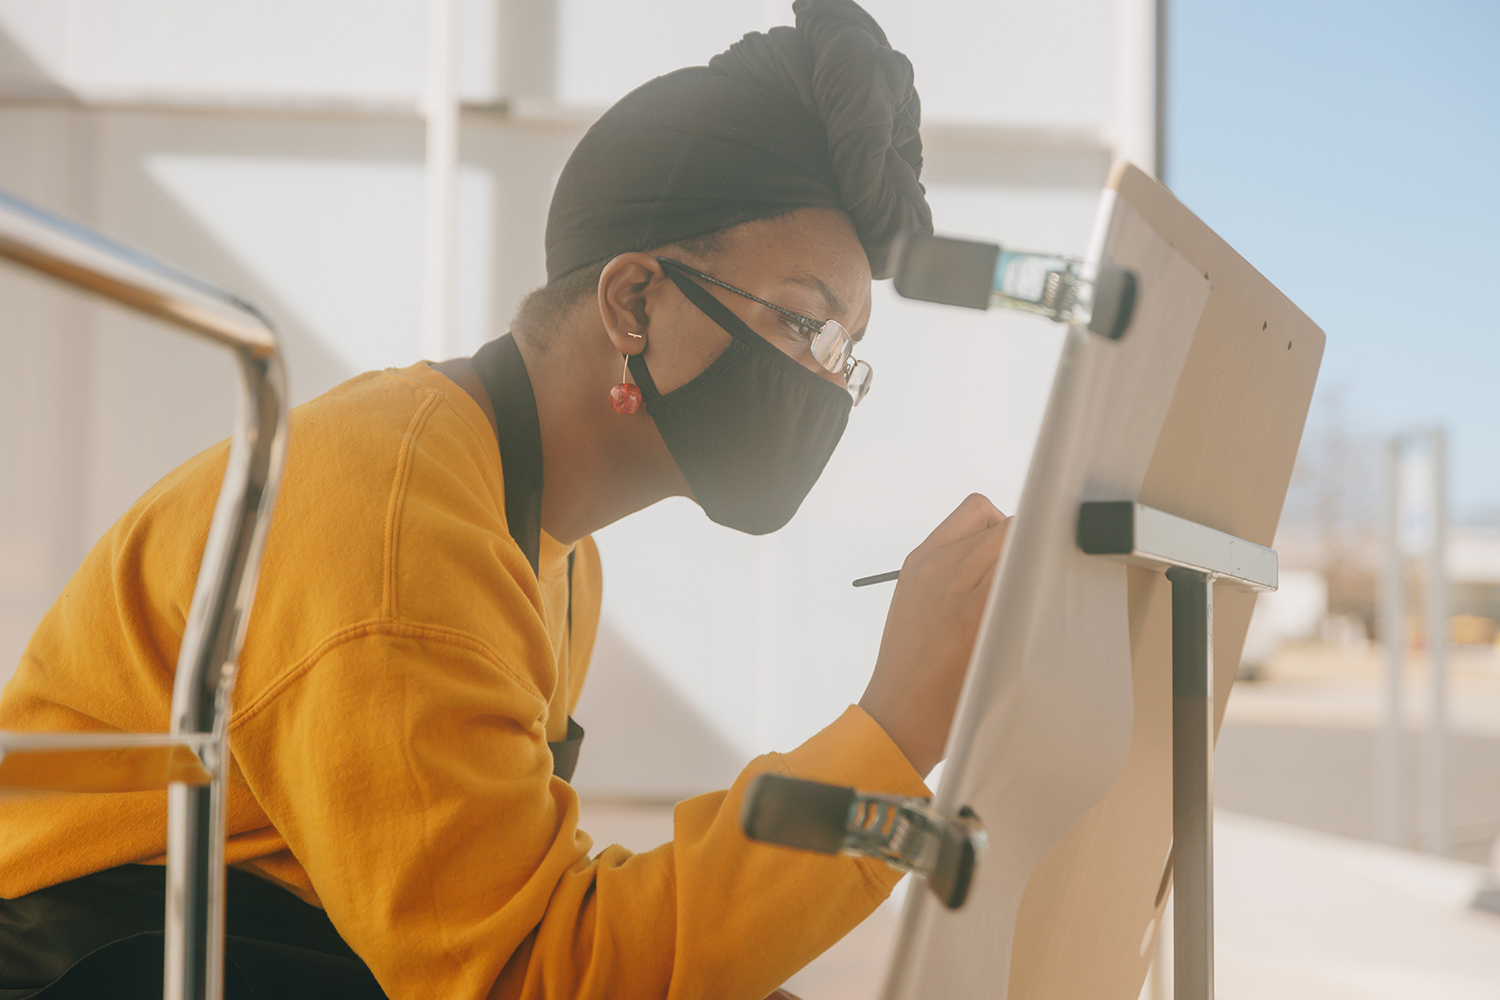 A person in a mustard-yellow sweatshirt, head wrap and mask draws on an easel outside